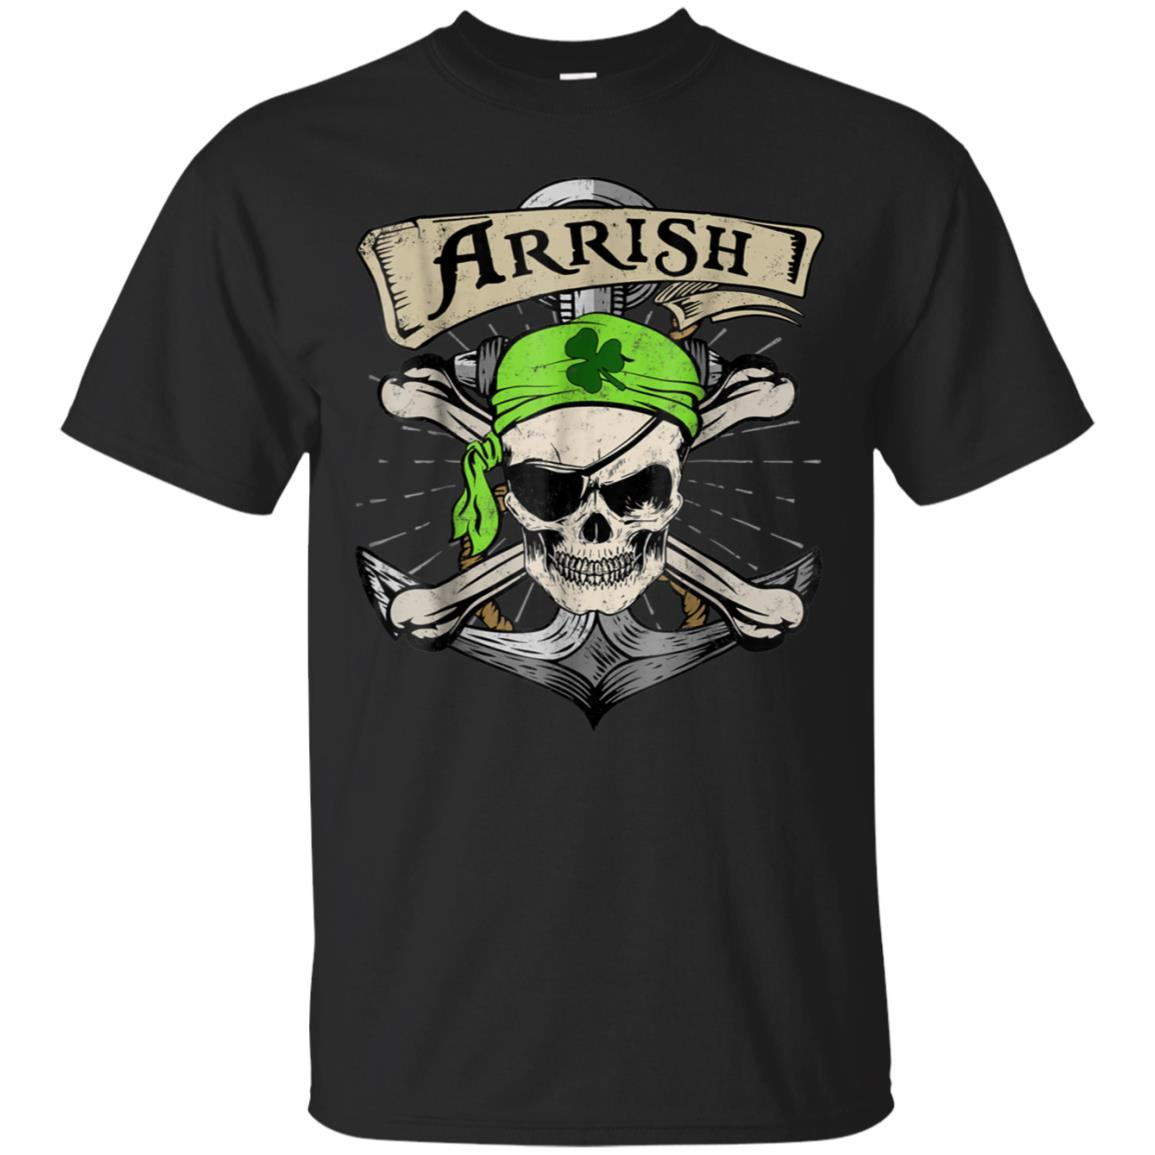 Arrish Irish Pirate Funny St Patrick's Day T-Shirt 99promocode